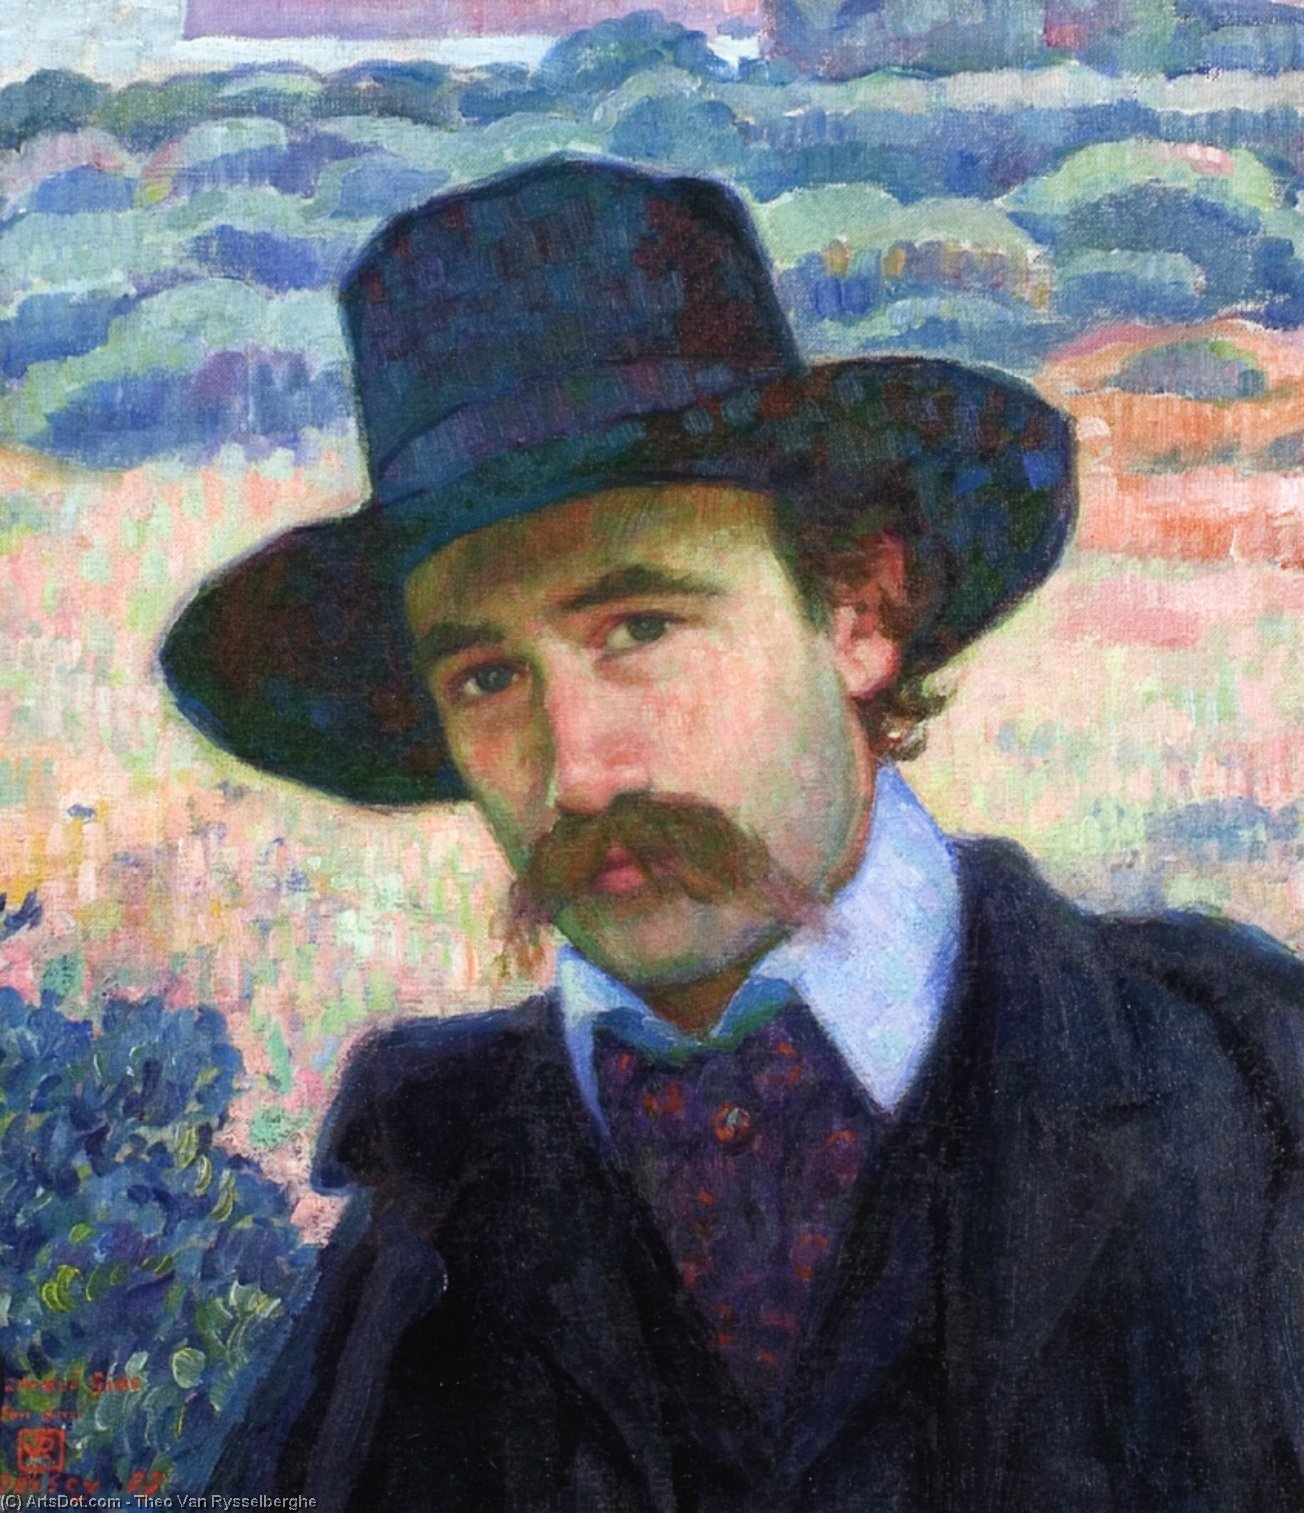 Andre Gide at Jersey, Oil On Canvas by Theo Van Rysselberghe (1862-1926, Belgium)